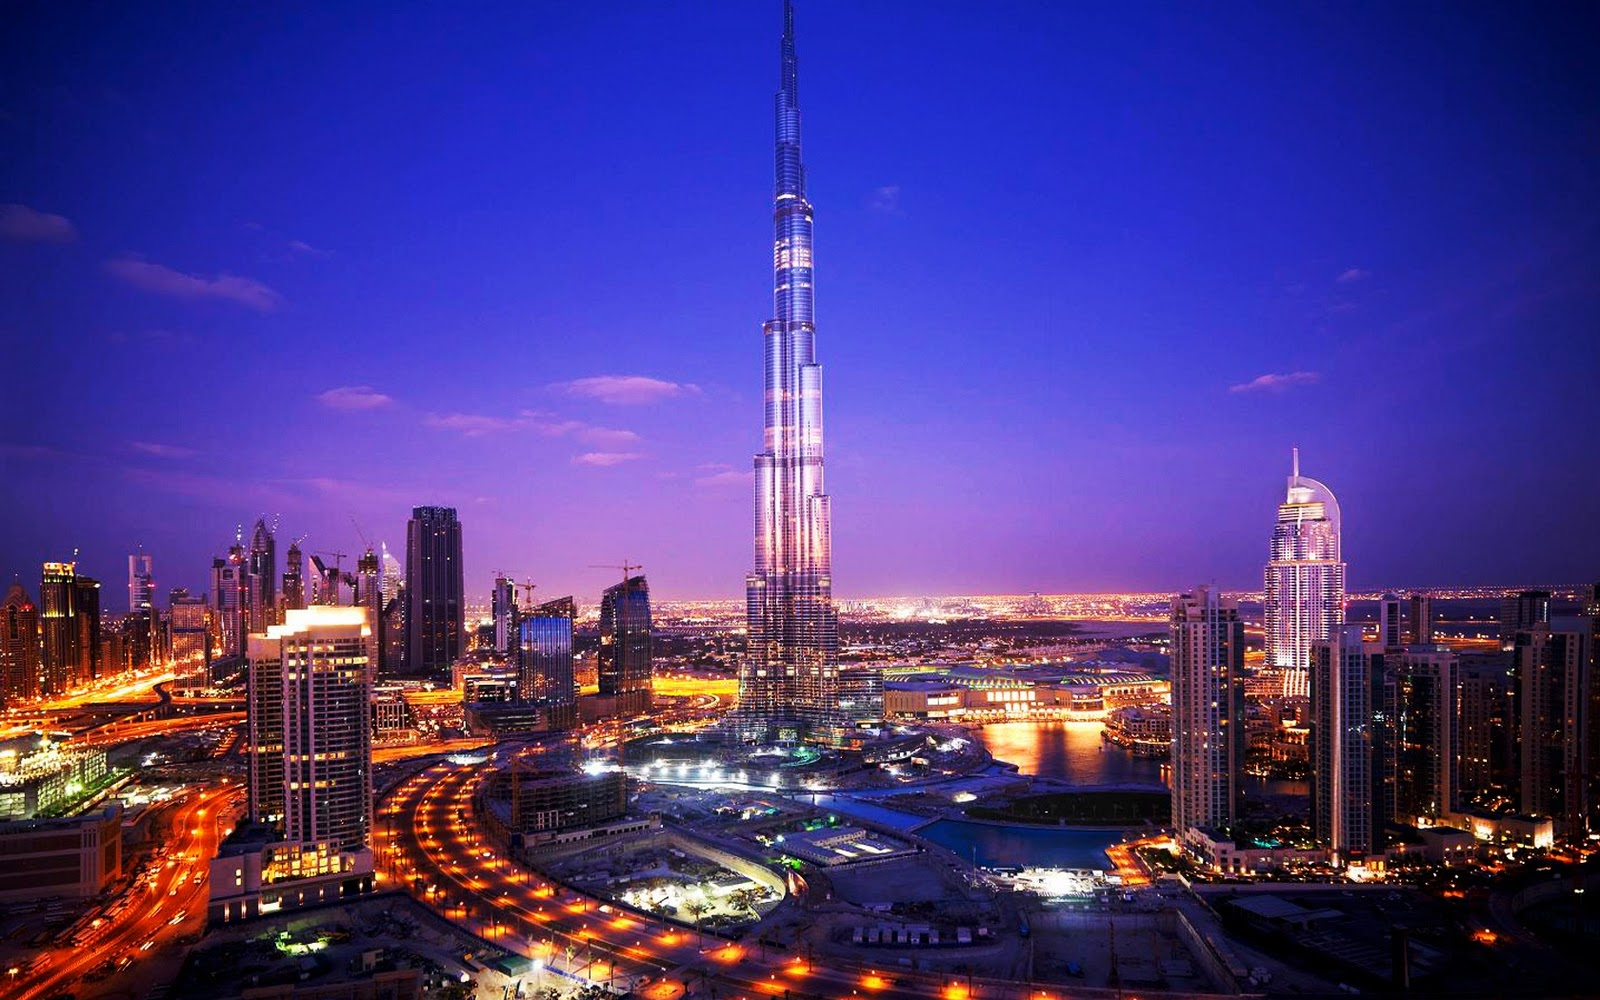 burj khalifa tower dubai wallpapers - Burj Khalifa Tower Dubai Wallpapers HD Wallpapers